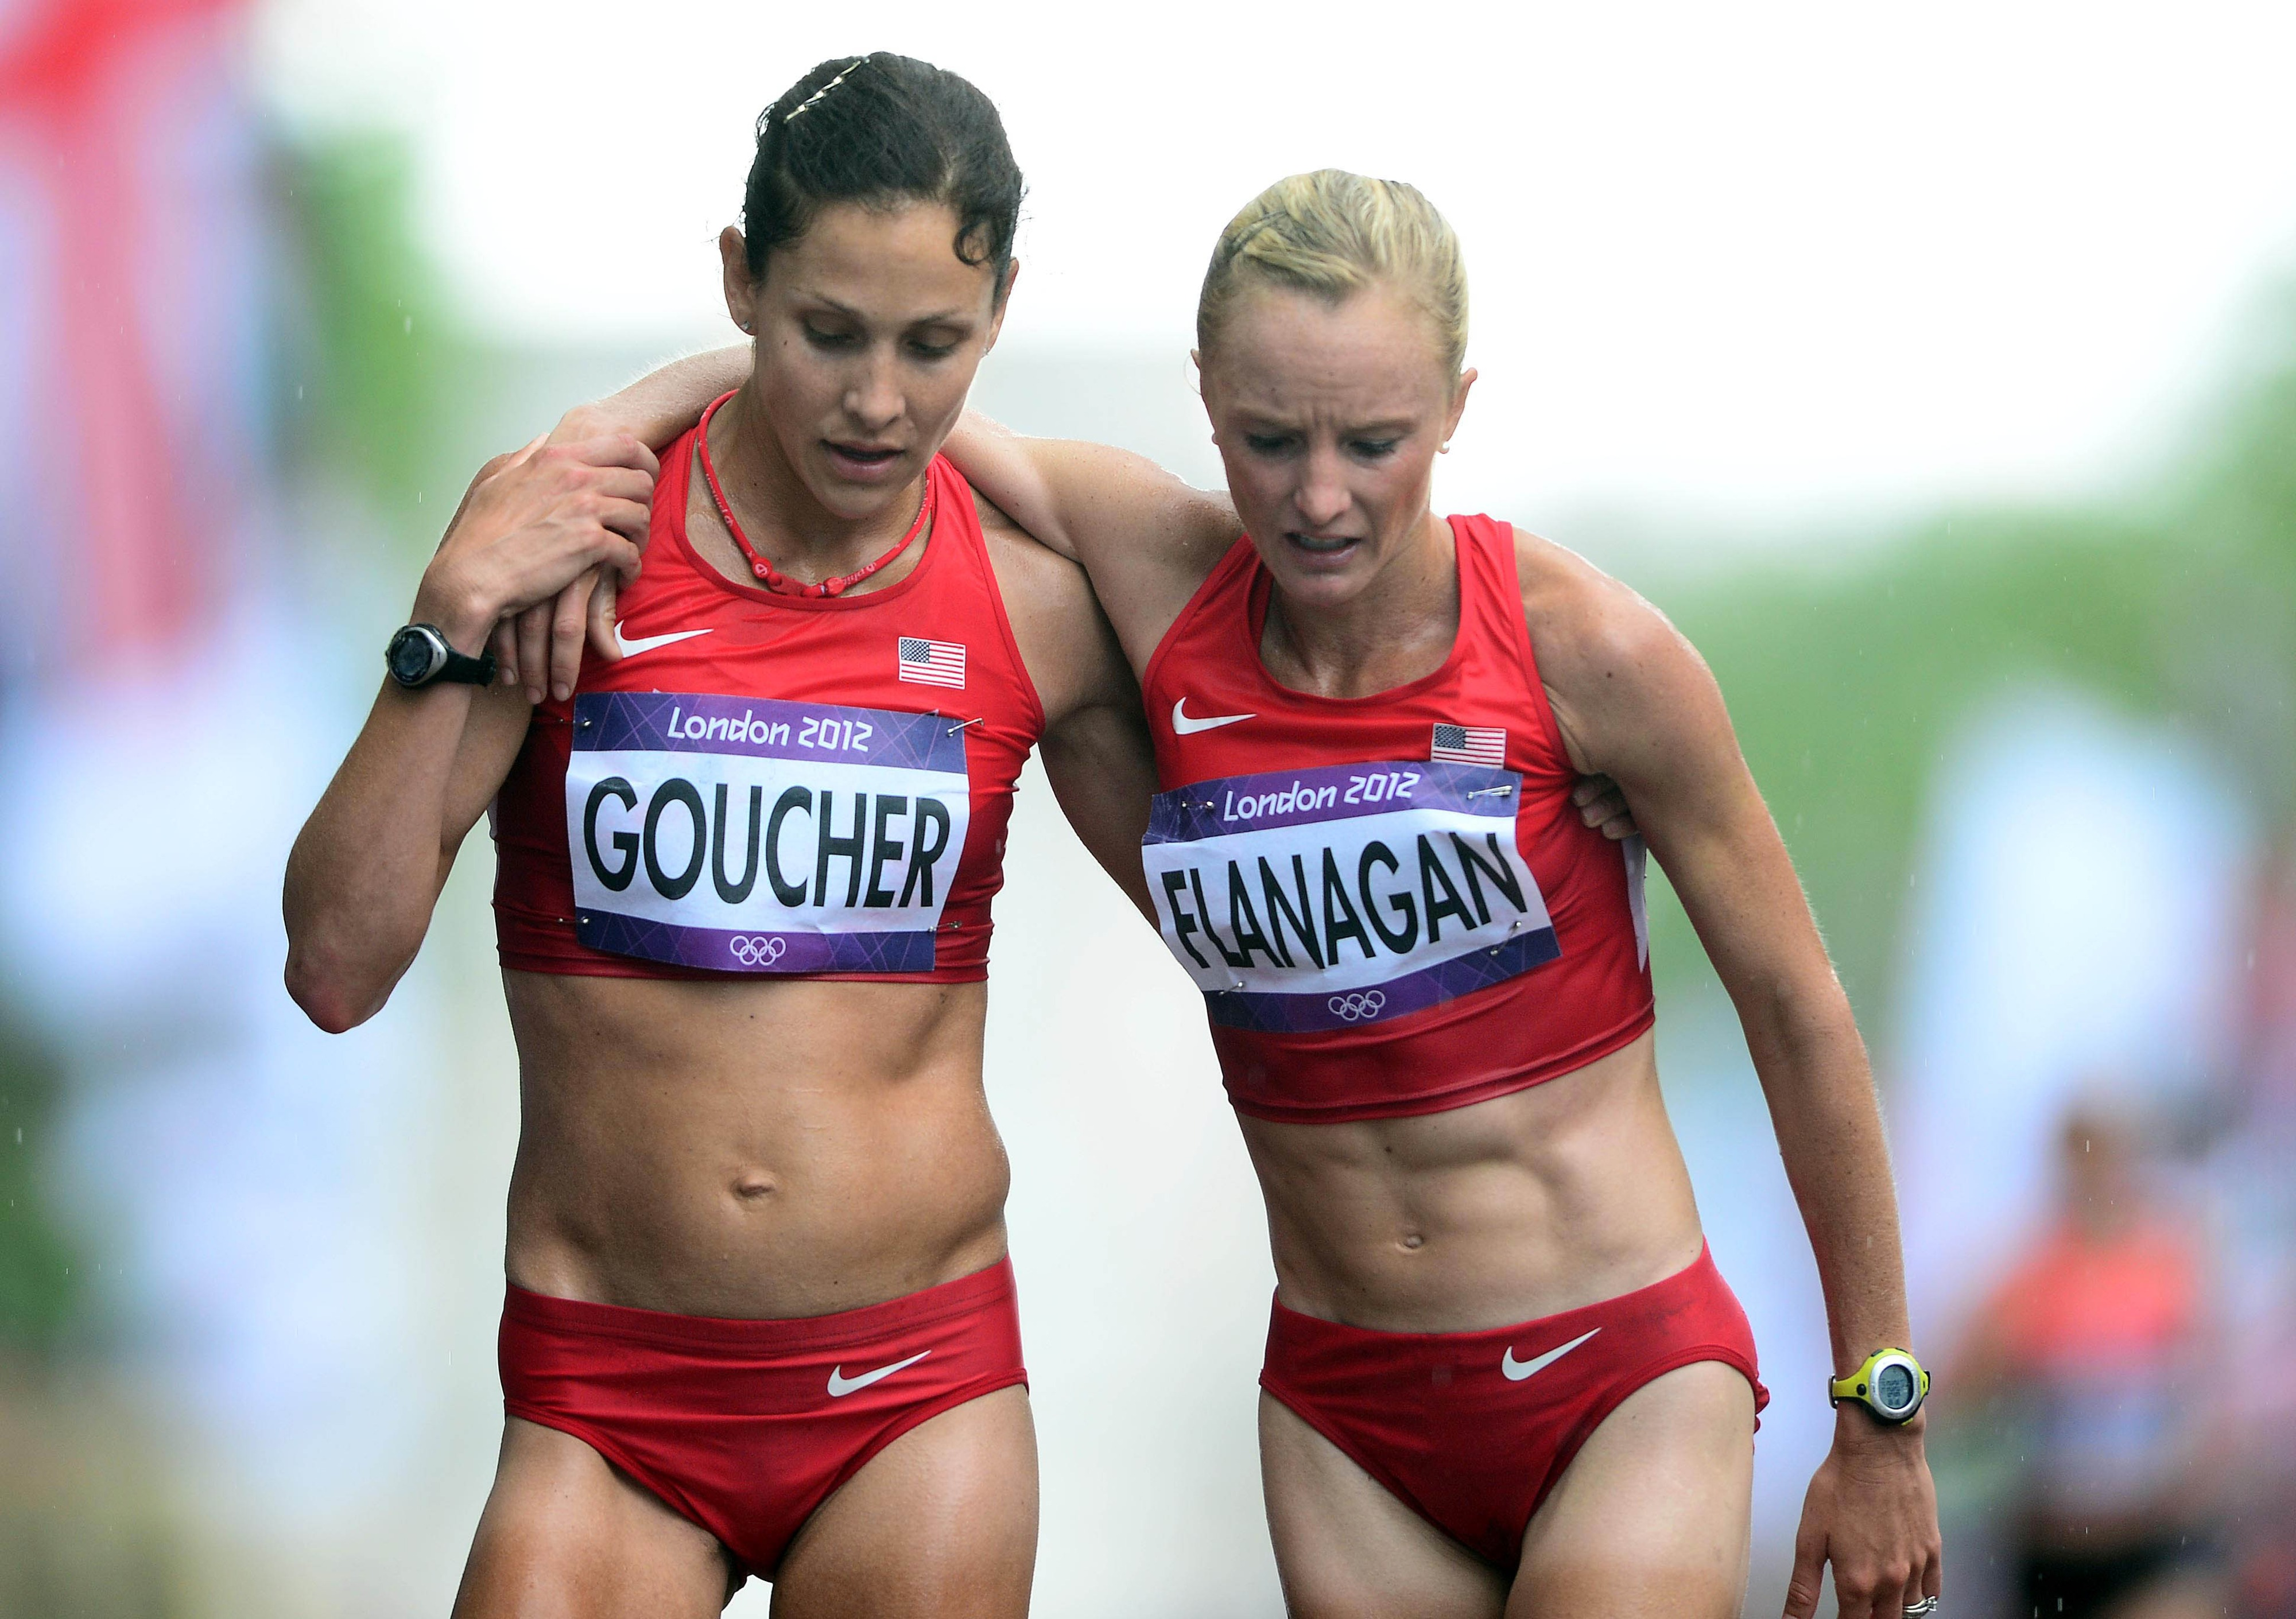 Aug 5, 2012; London, United Kingdom; Kara Goucher (USA), left, helps teammate Shalane Flanagan (USA) walk off the course following the women's marathon in the London 2012 Olympic Games at The Mall. Mandatory Credit: Andrew Weber-USA TODAY Sports